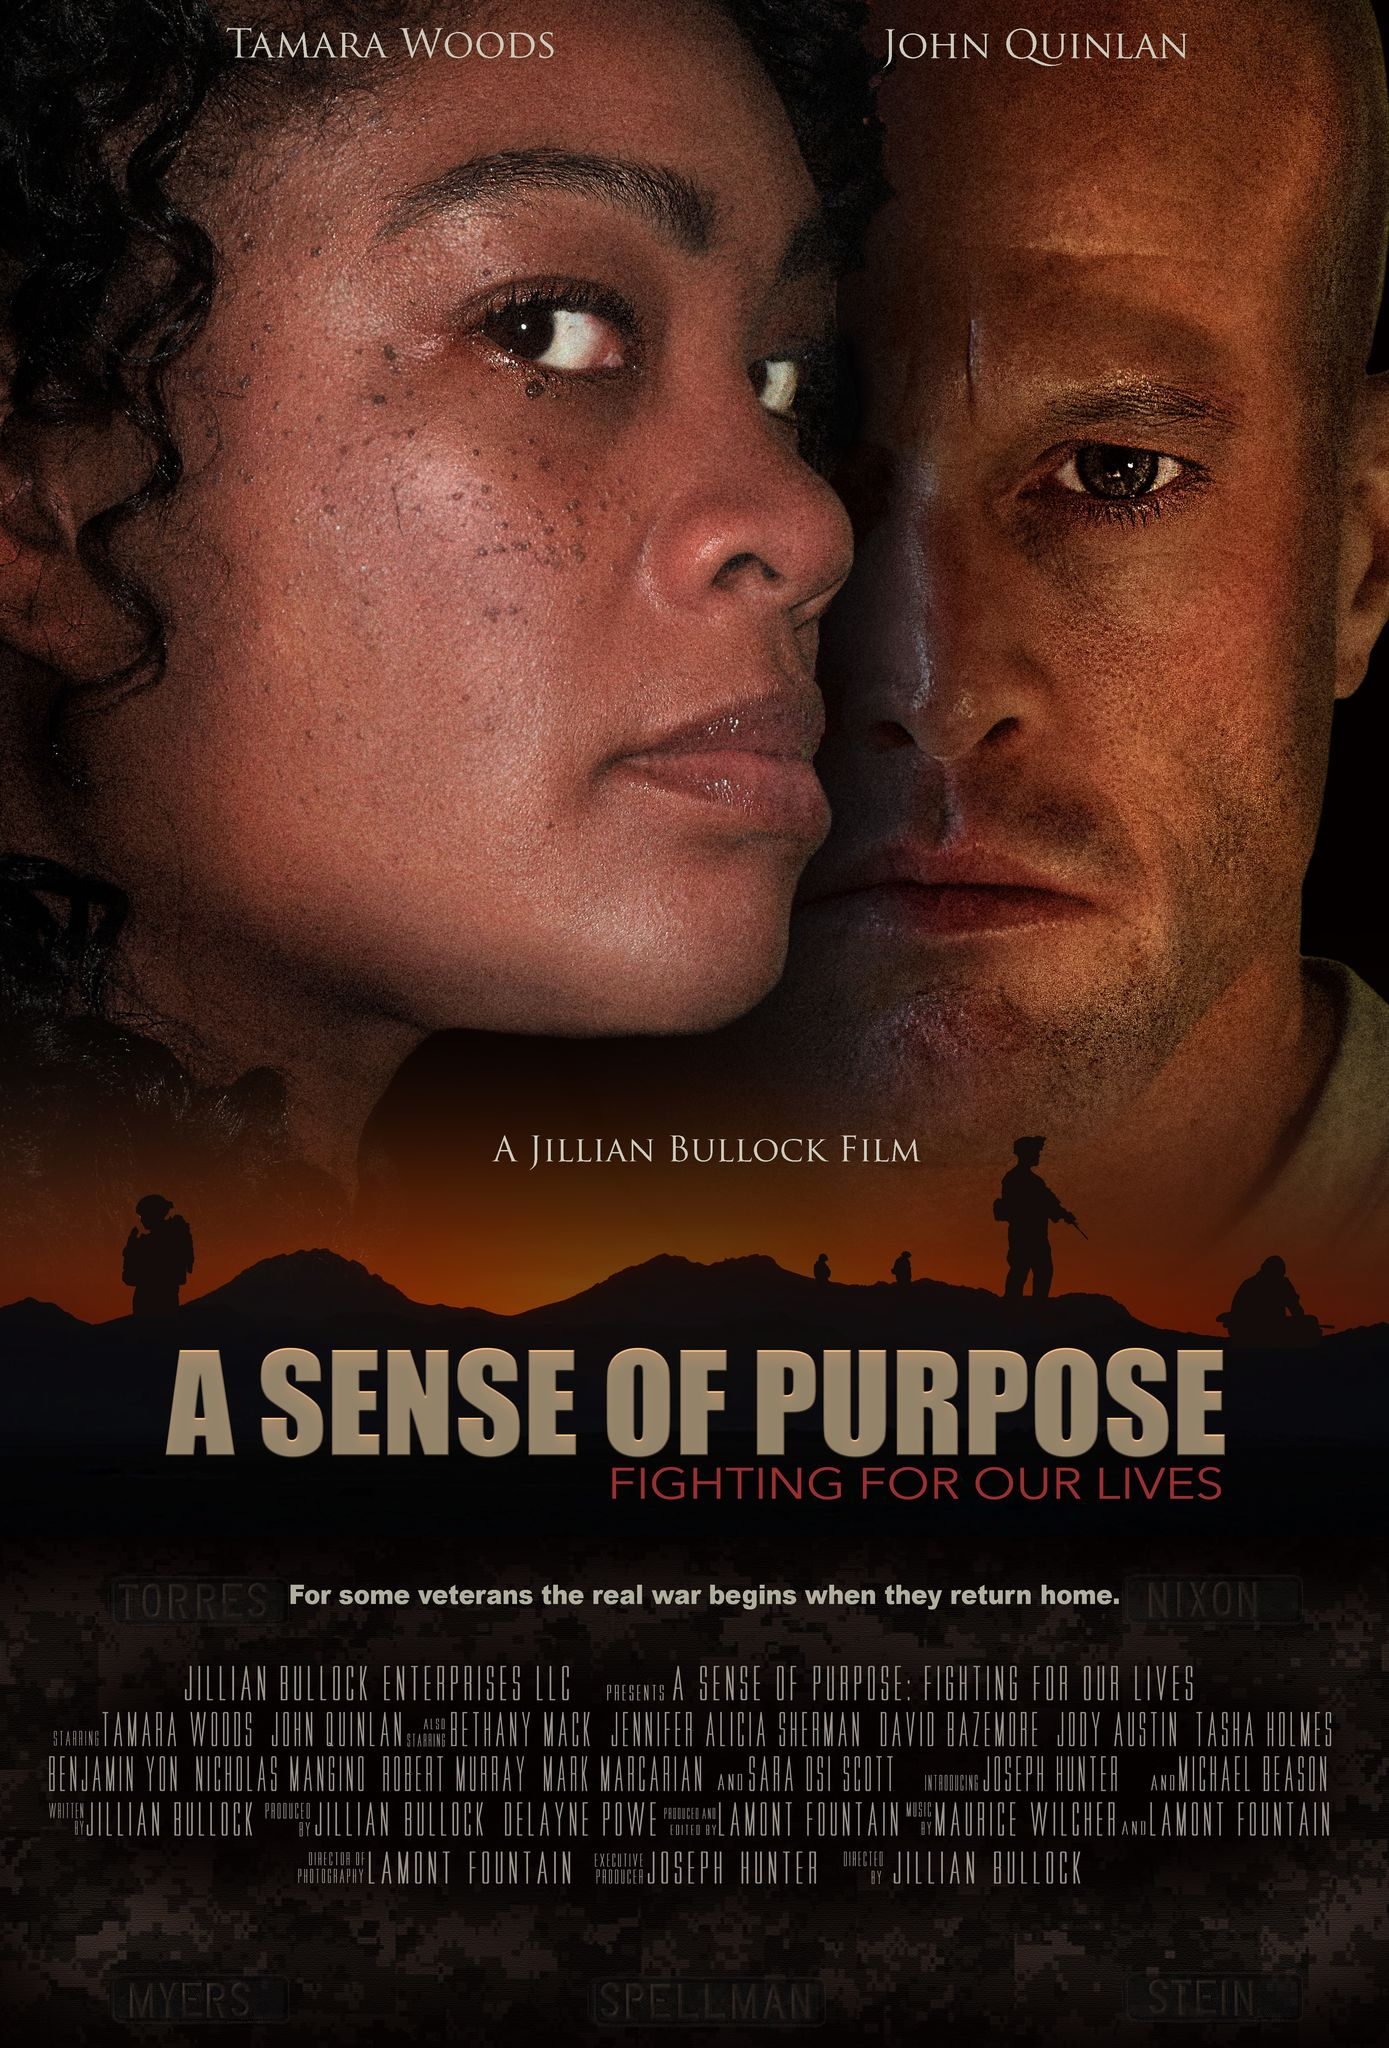 A Sense of Purpose: Fighting For Our Lives